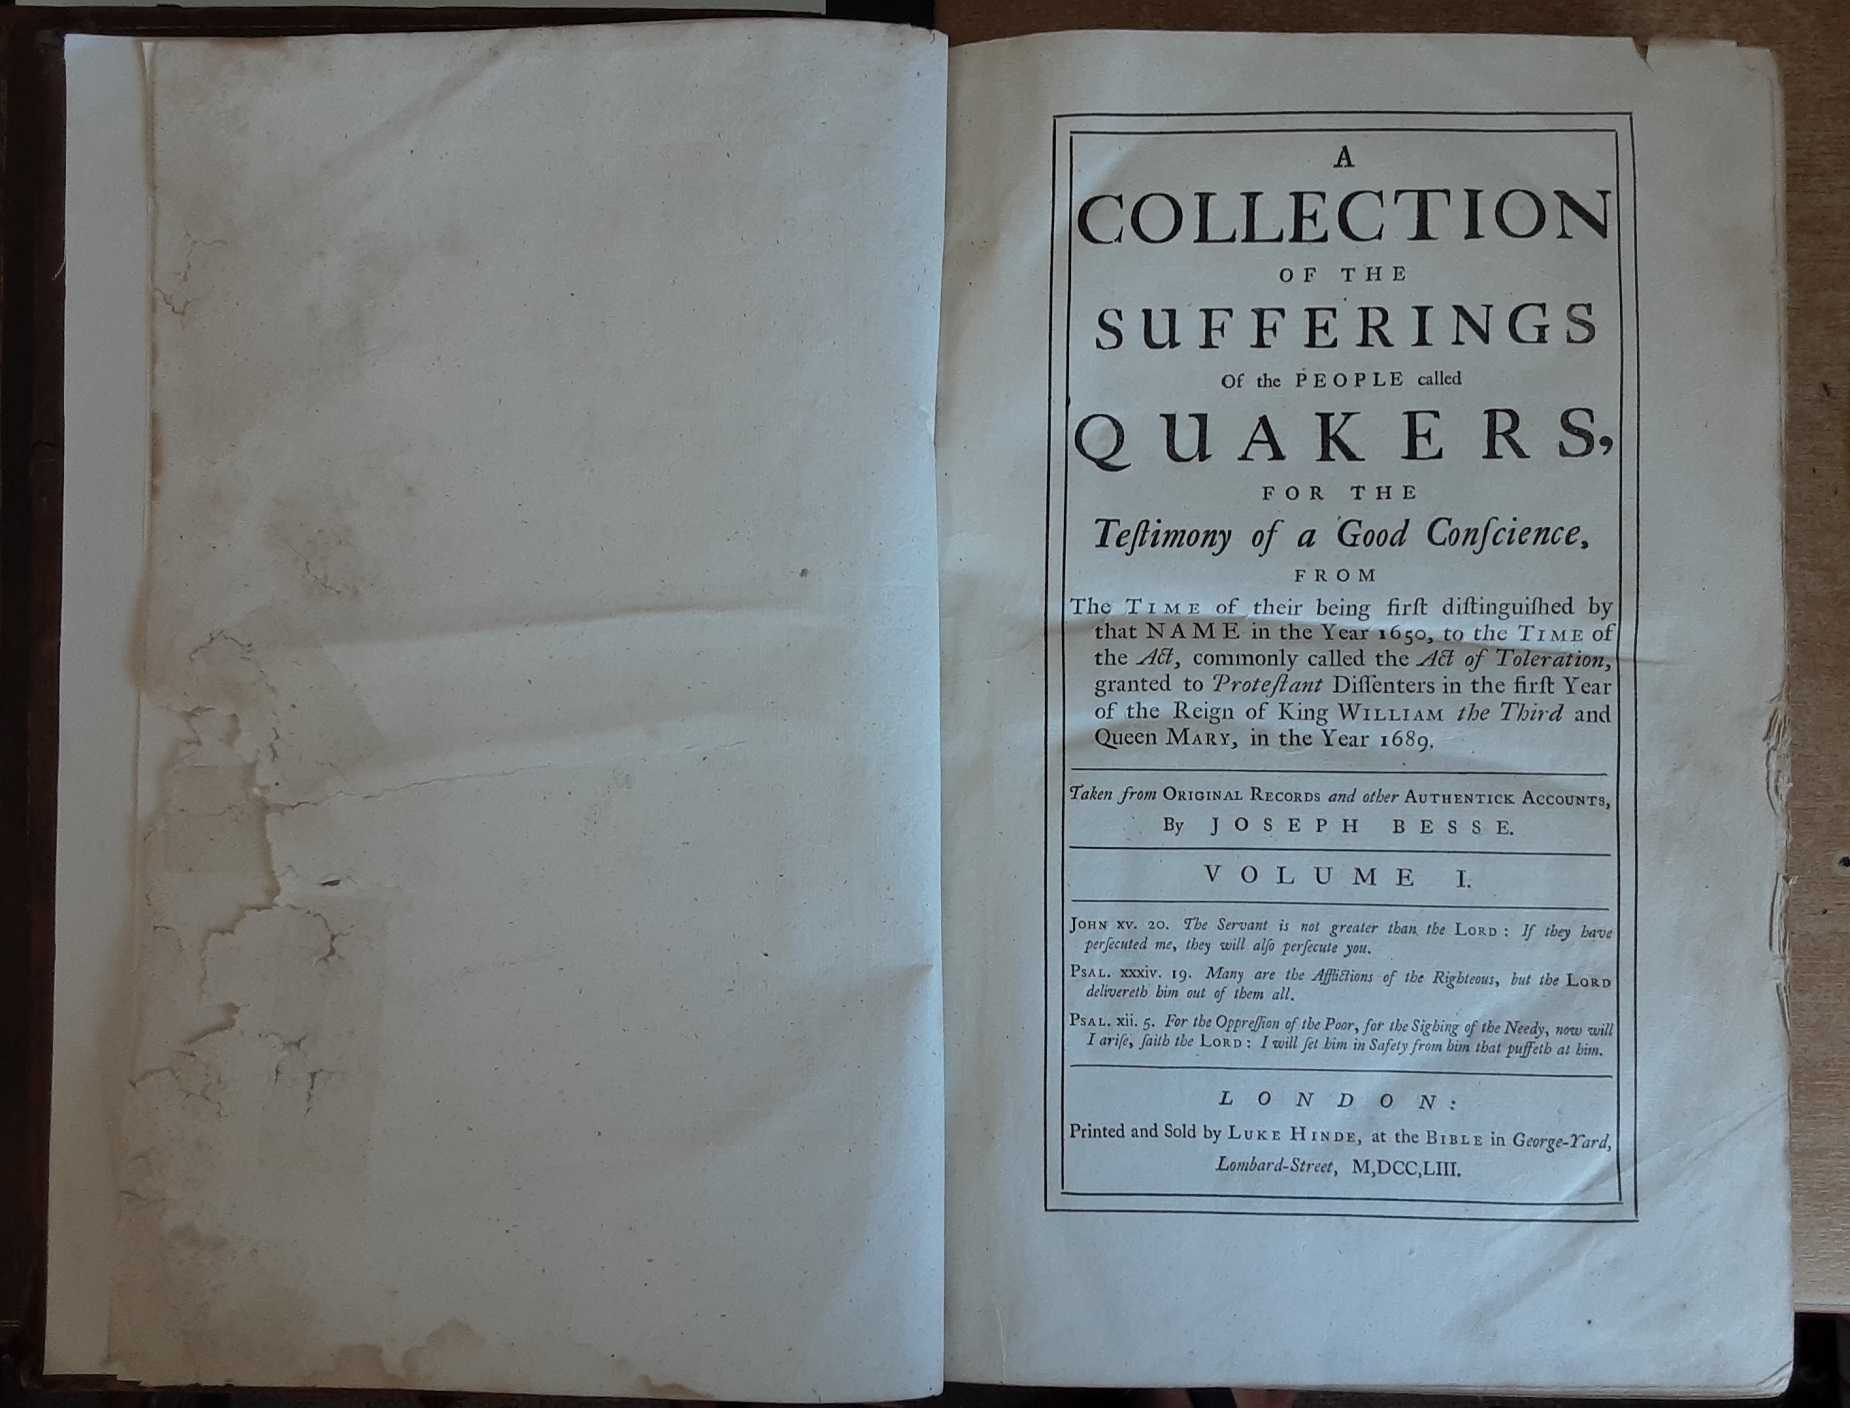 Image for A collection of the sufferings of the people called Quakers : for the testimony of a good conscience from the time of their being first distinguished by that name in the year 1650 to the time of the act commonly called the Act of toleration granted to Protestant dissenters in the first year of the reign of King William the Third and Queen Mary in the year 1689 (two volumes complete)